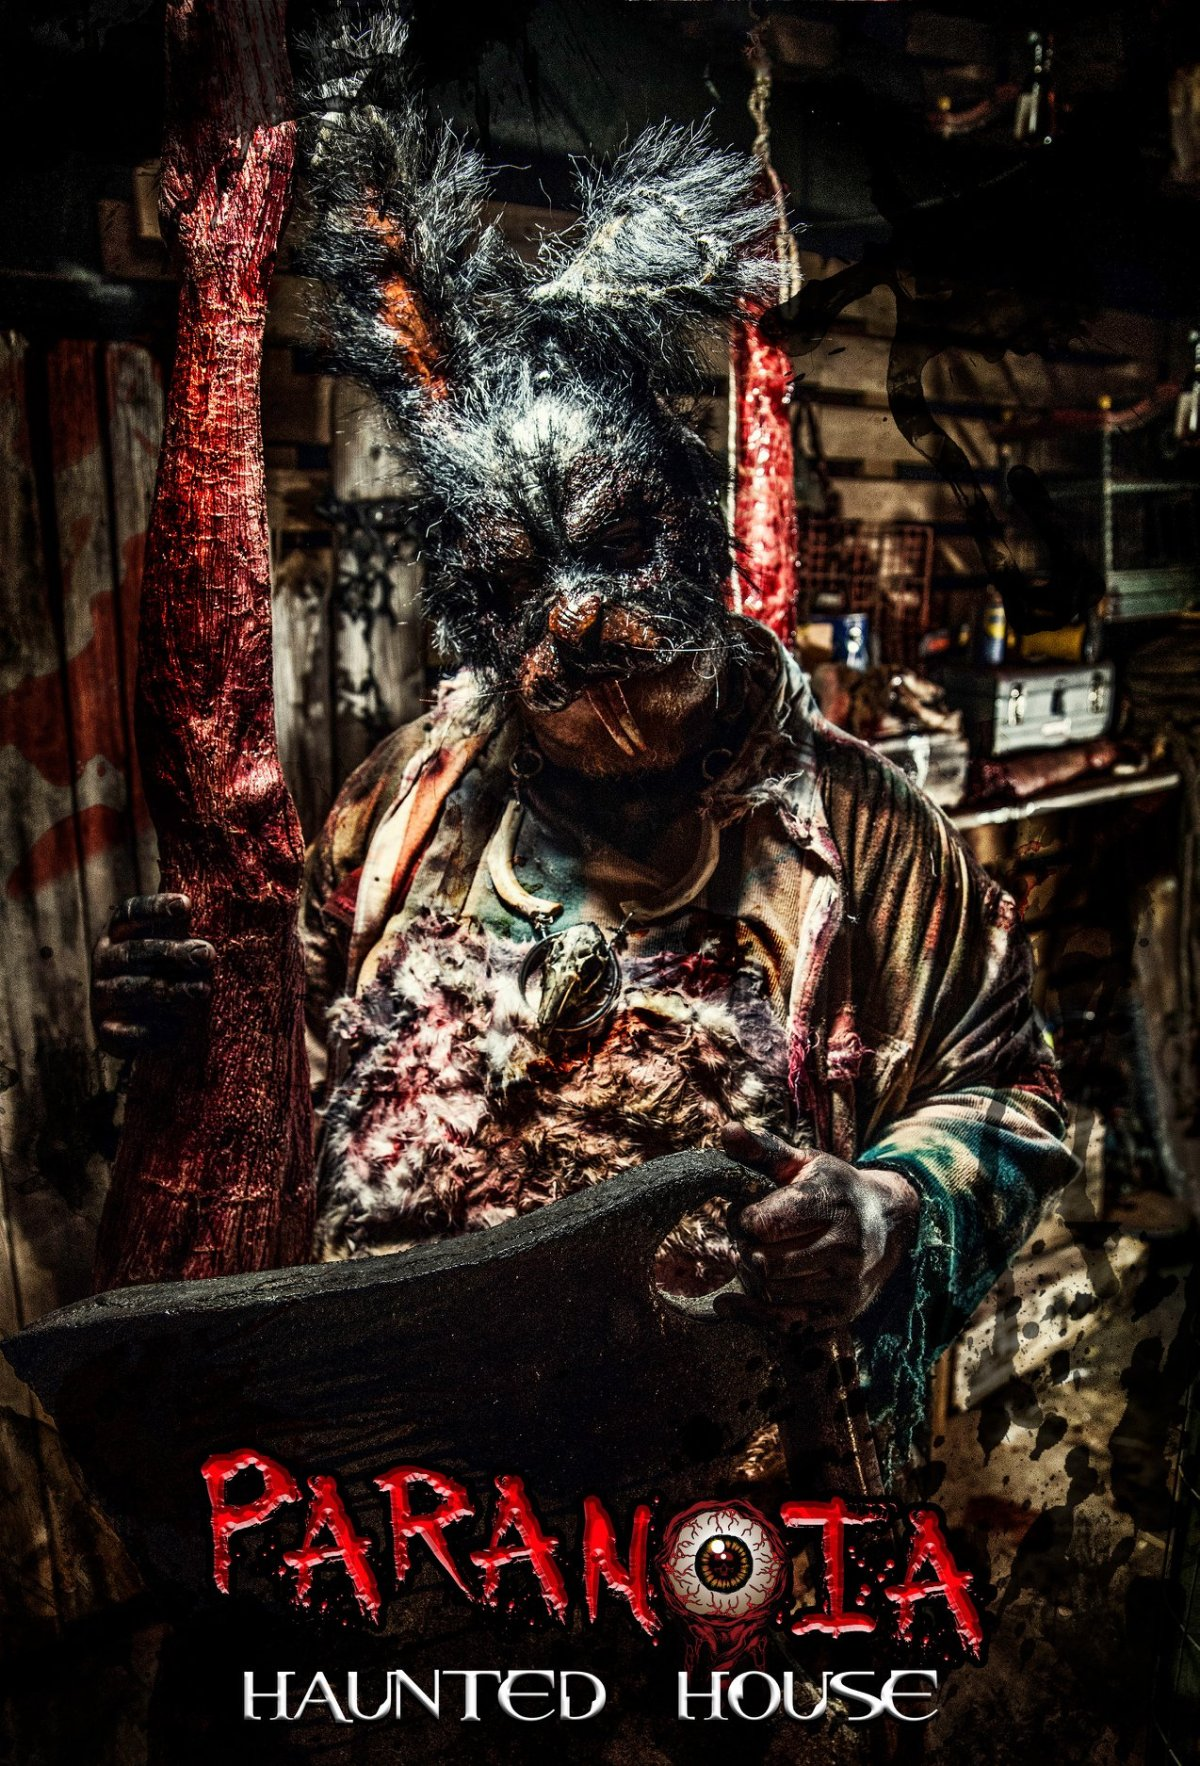 Paranoia Haunted House Gruesome Live Haunt